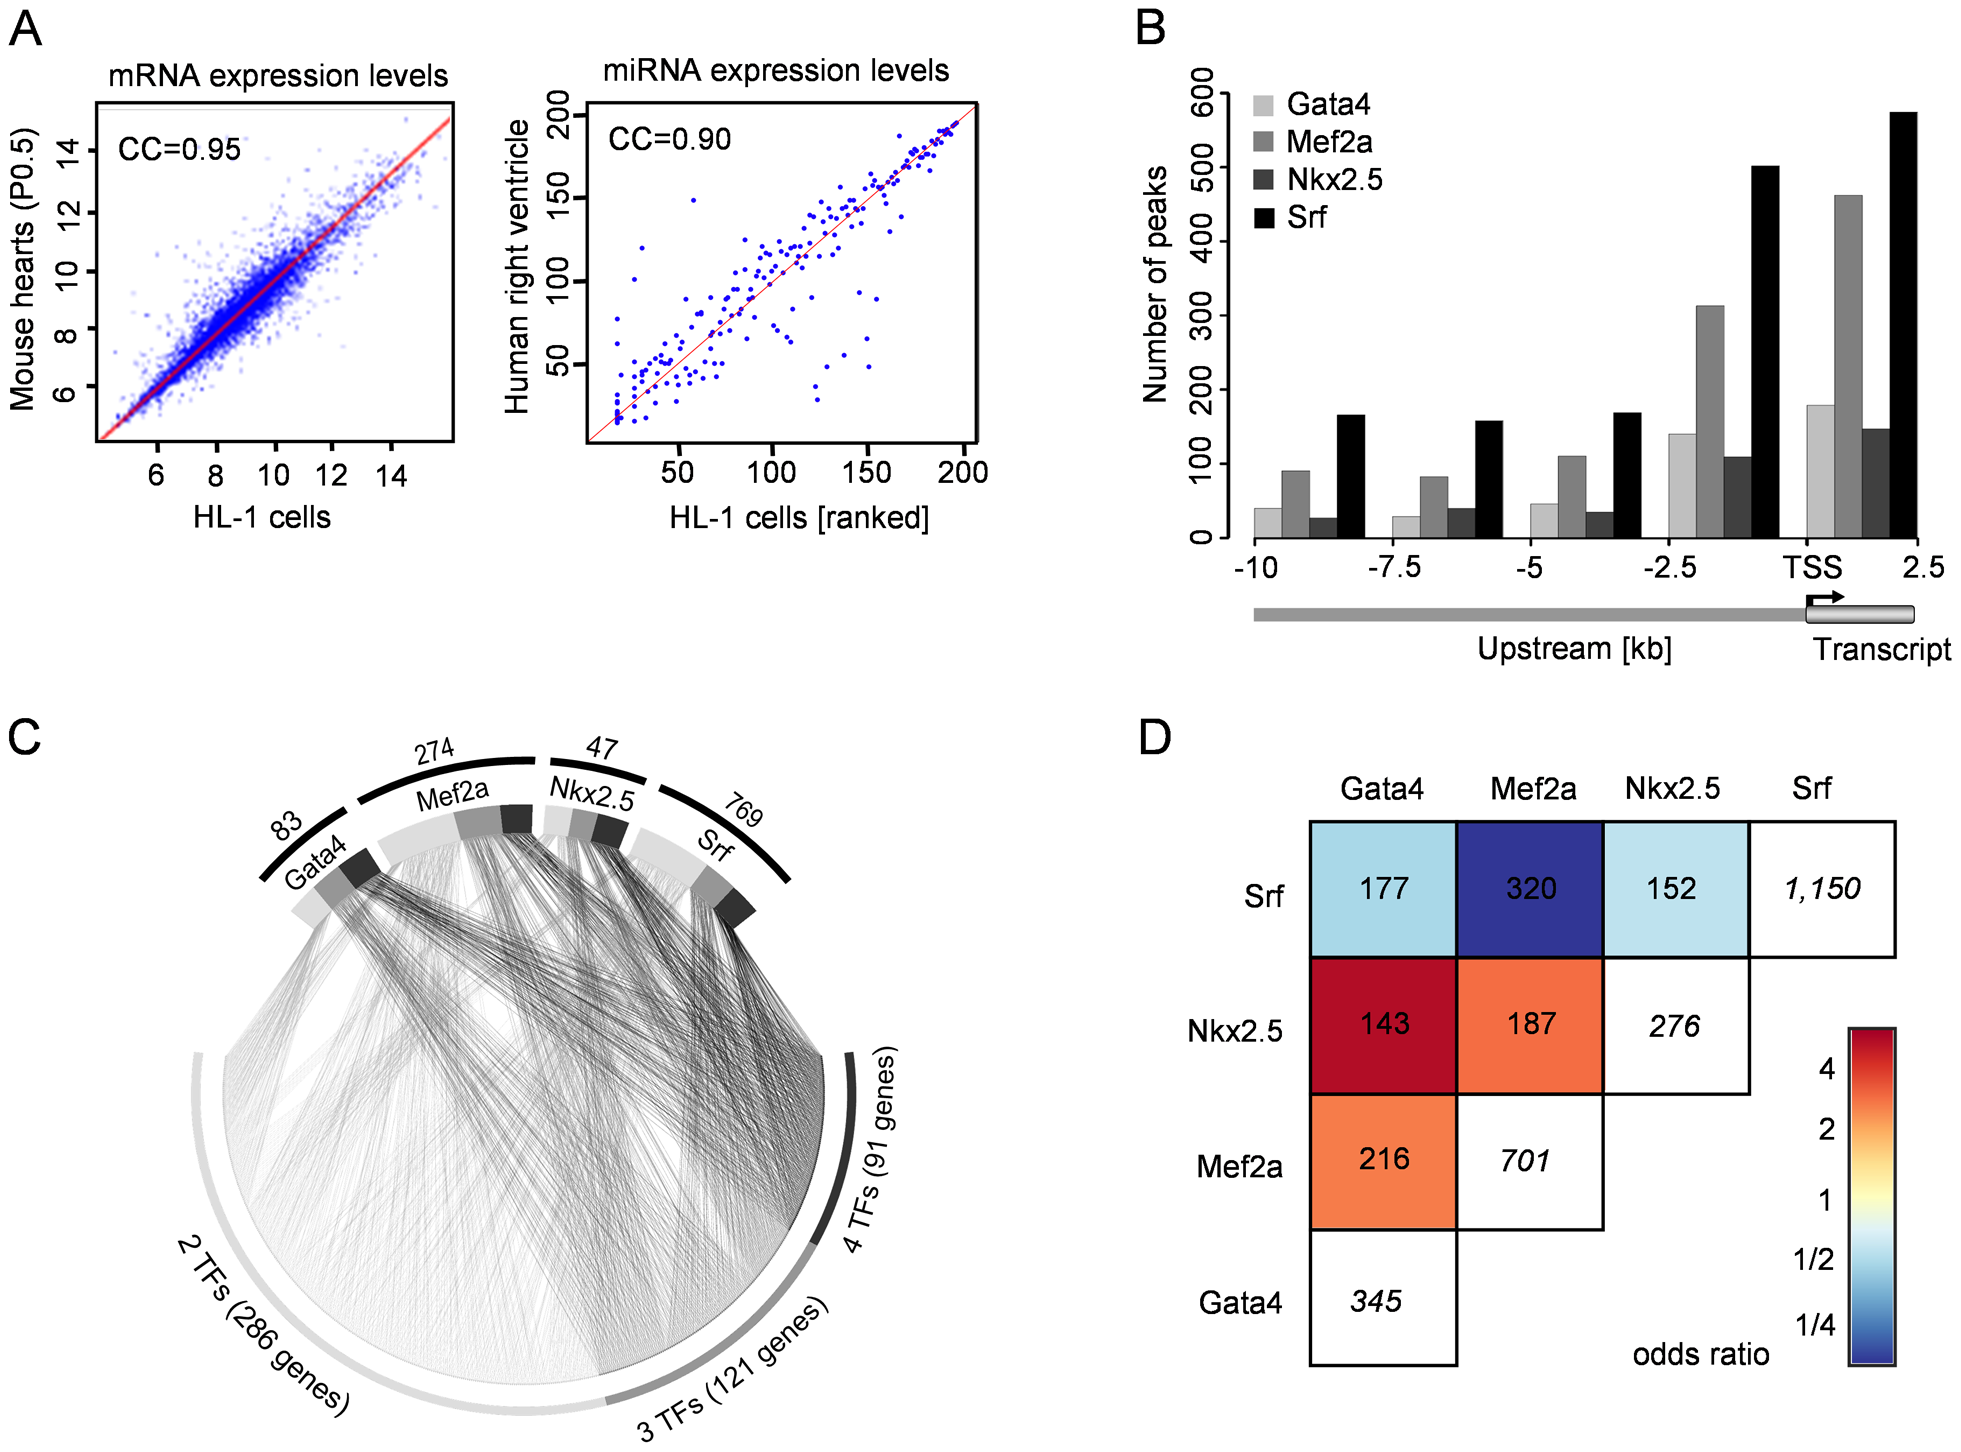 Binding site location and co-occurrence of Gata4, Mef2a, Nkx2.5, and Srf.